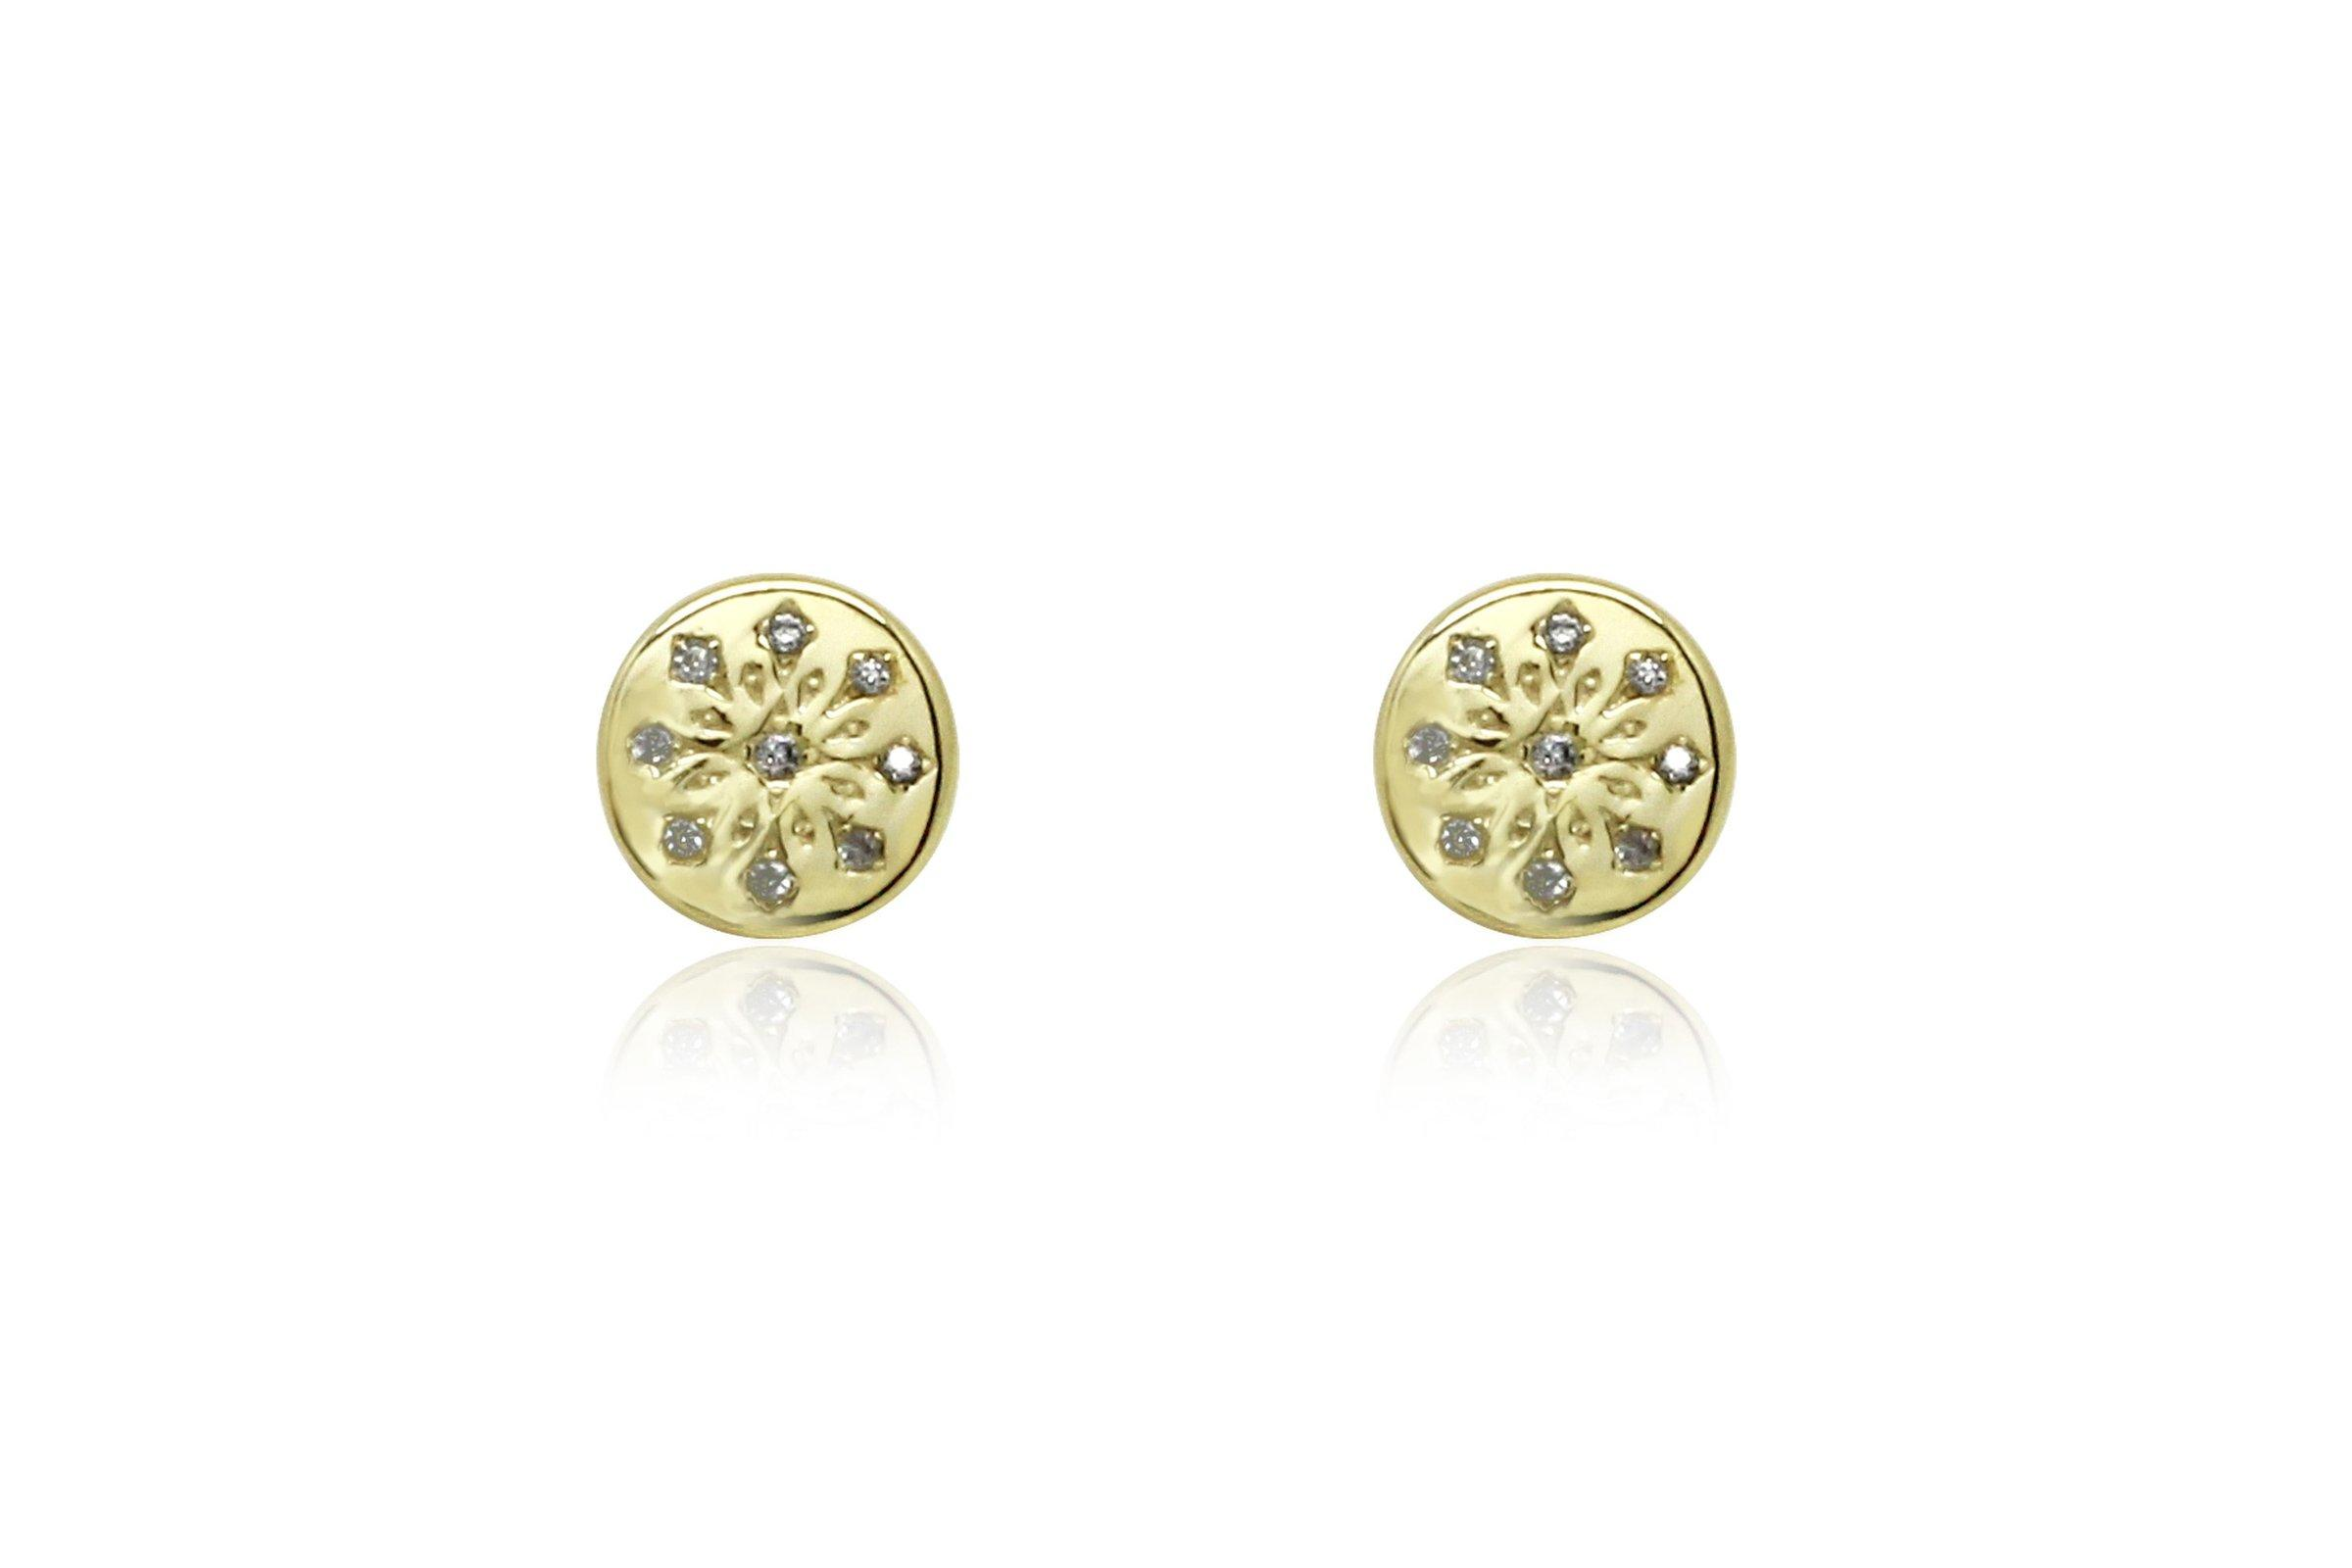 Image#1 Arnes Gold Stud Earrings